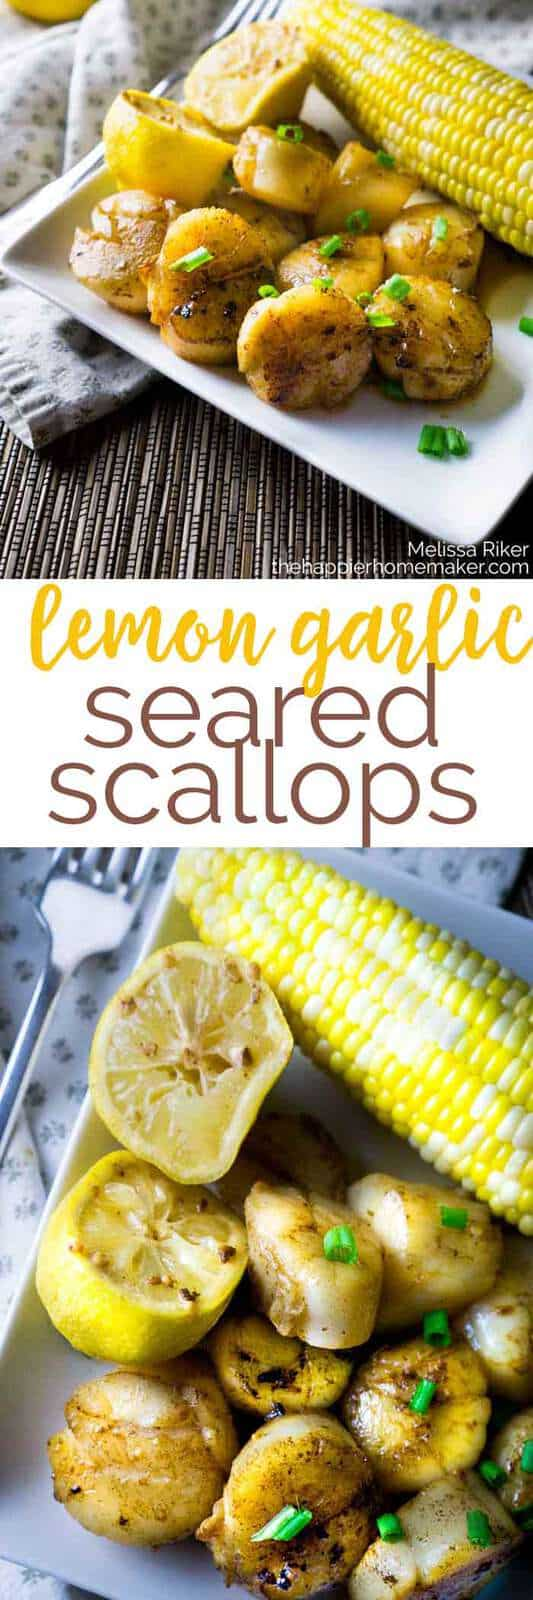 Easy to make Lemon Garlic Seared Scallops are a healthy fast dinner recipe. Seafood doesn't have to be hard to cook!